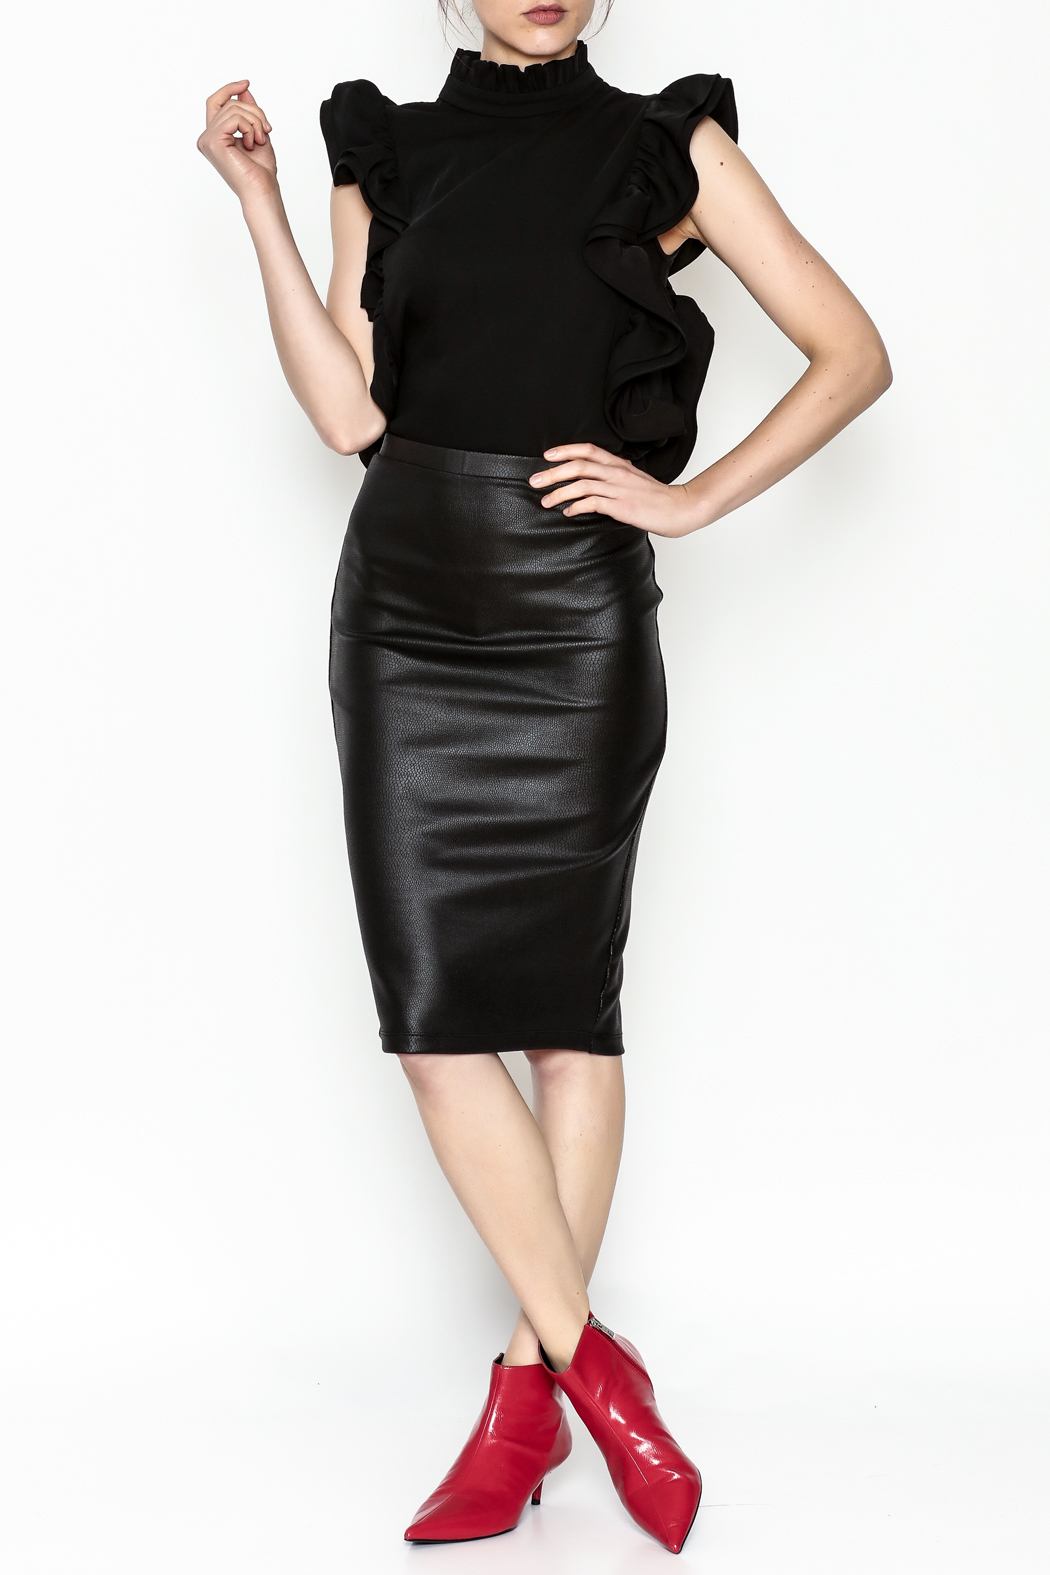 Jack by BB Dakota Chloe Snakeskin Skirt - Side Cropped Image